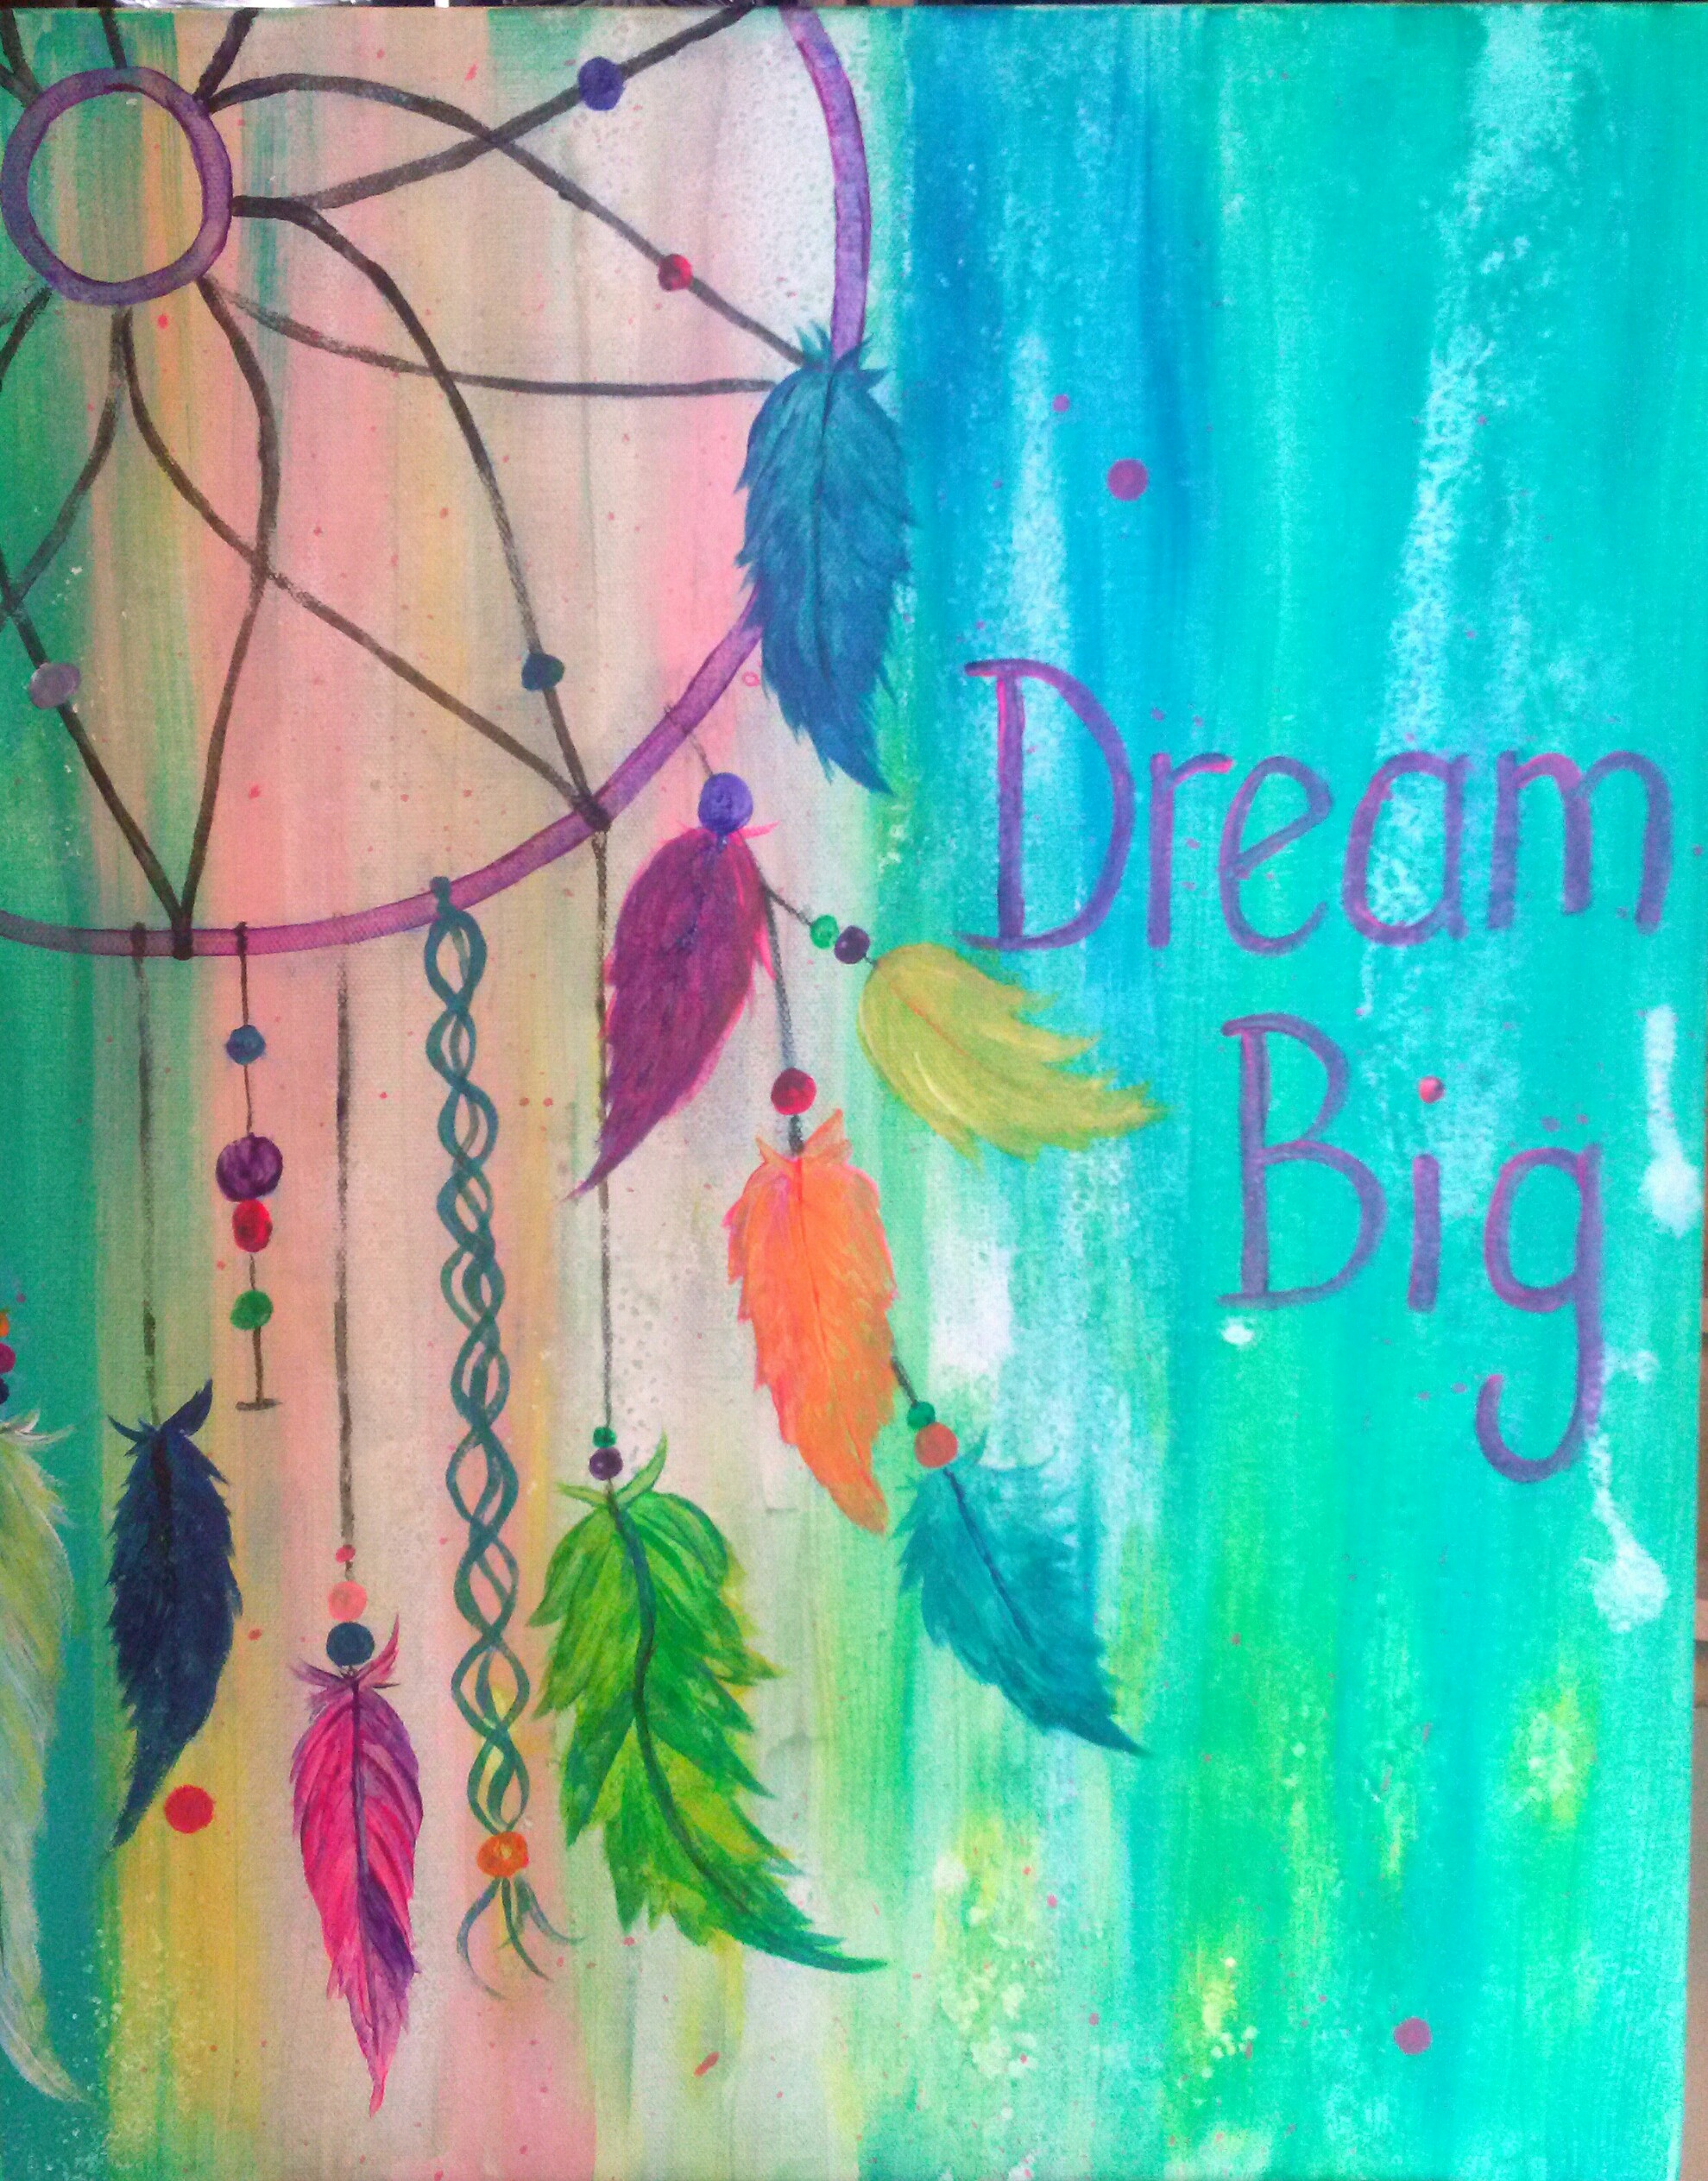 Dream catcher tues nov 25 7pm class full for Teaching kids to paint on canvas